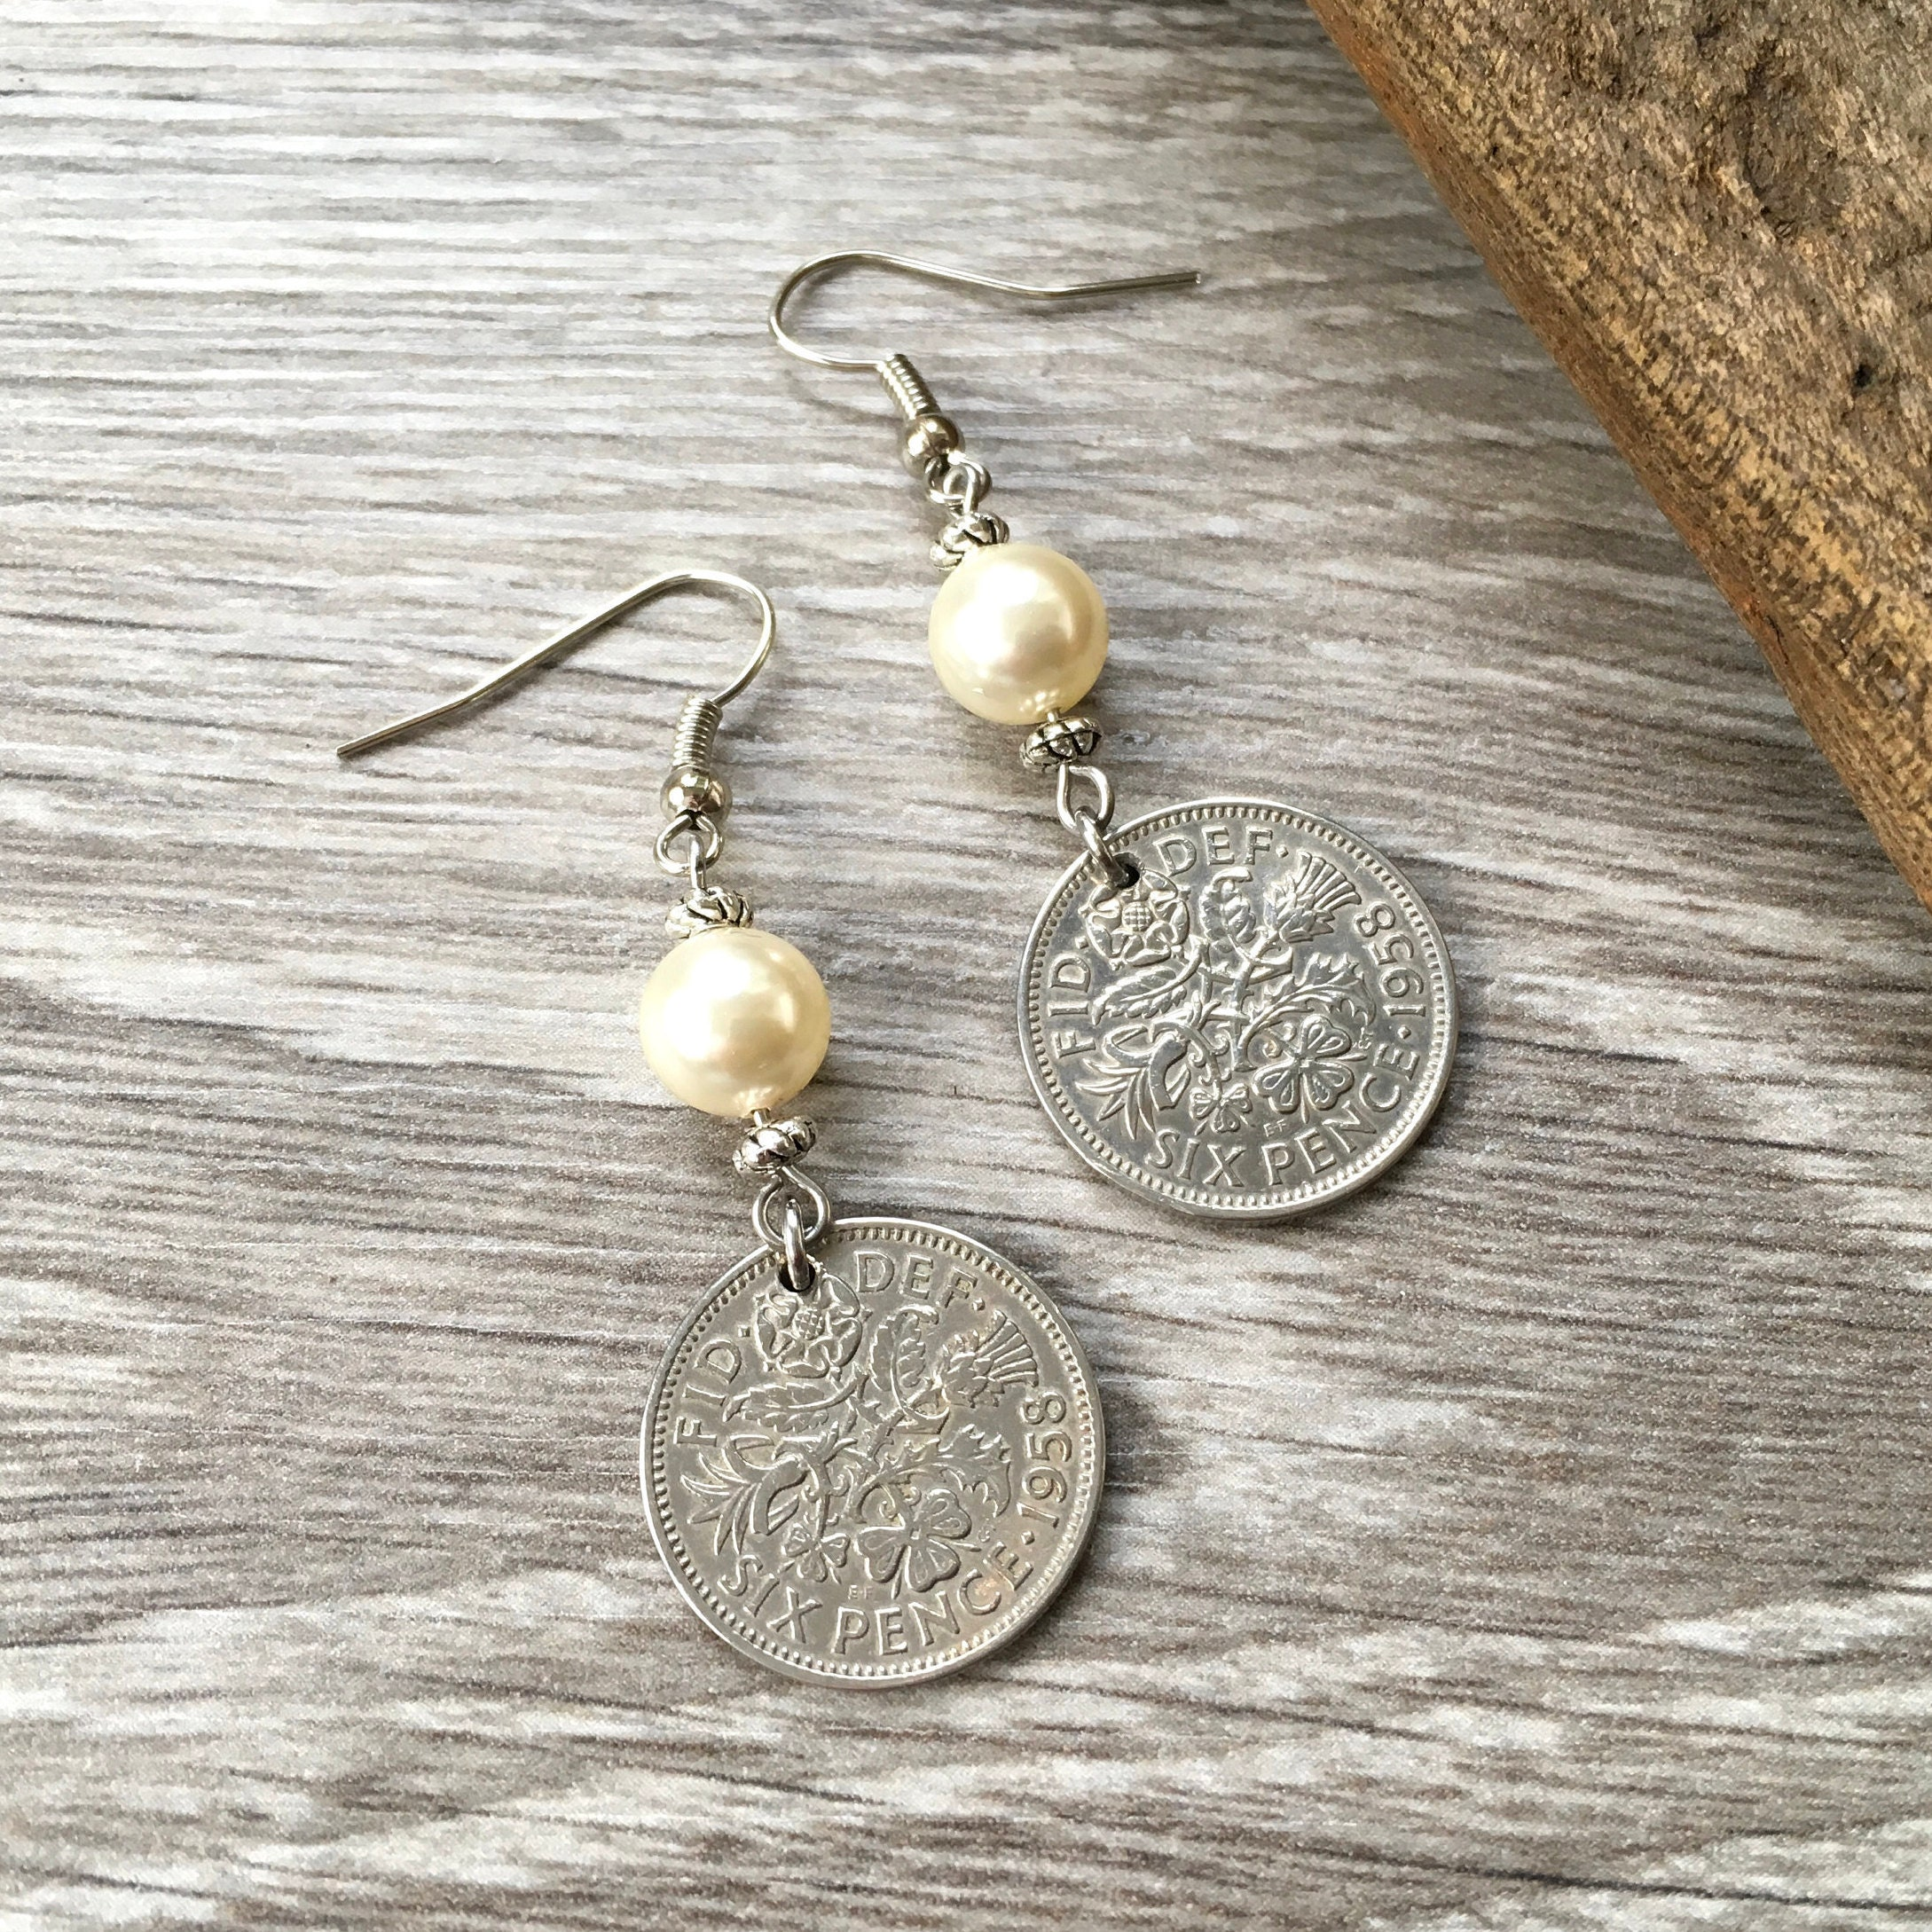 60th Birthday Gift For Her 1958 British Sixpence Earrings Pretty English Coin Jewelry Retirement Present Woman Boho